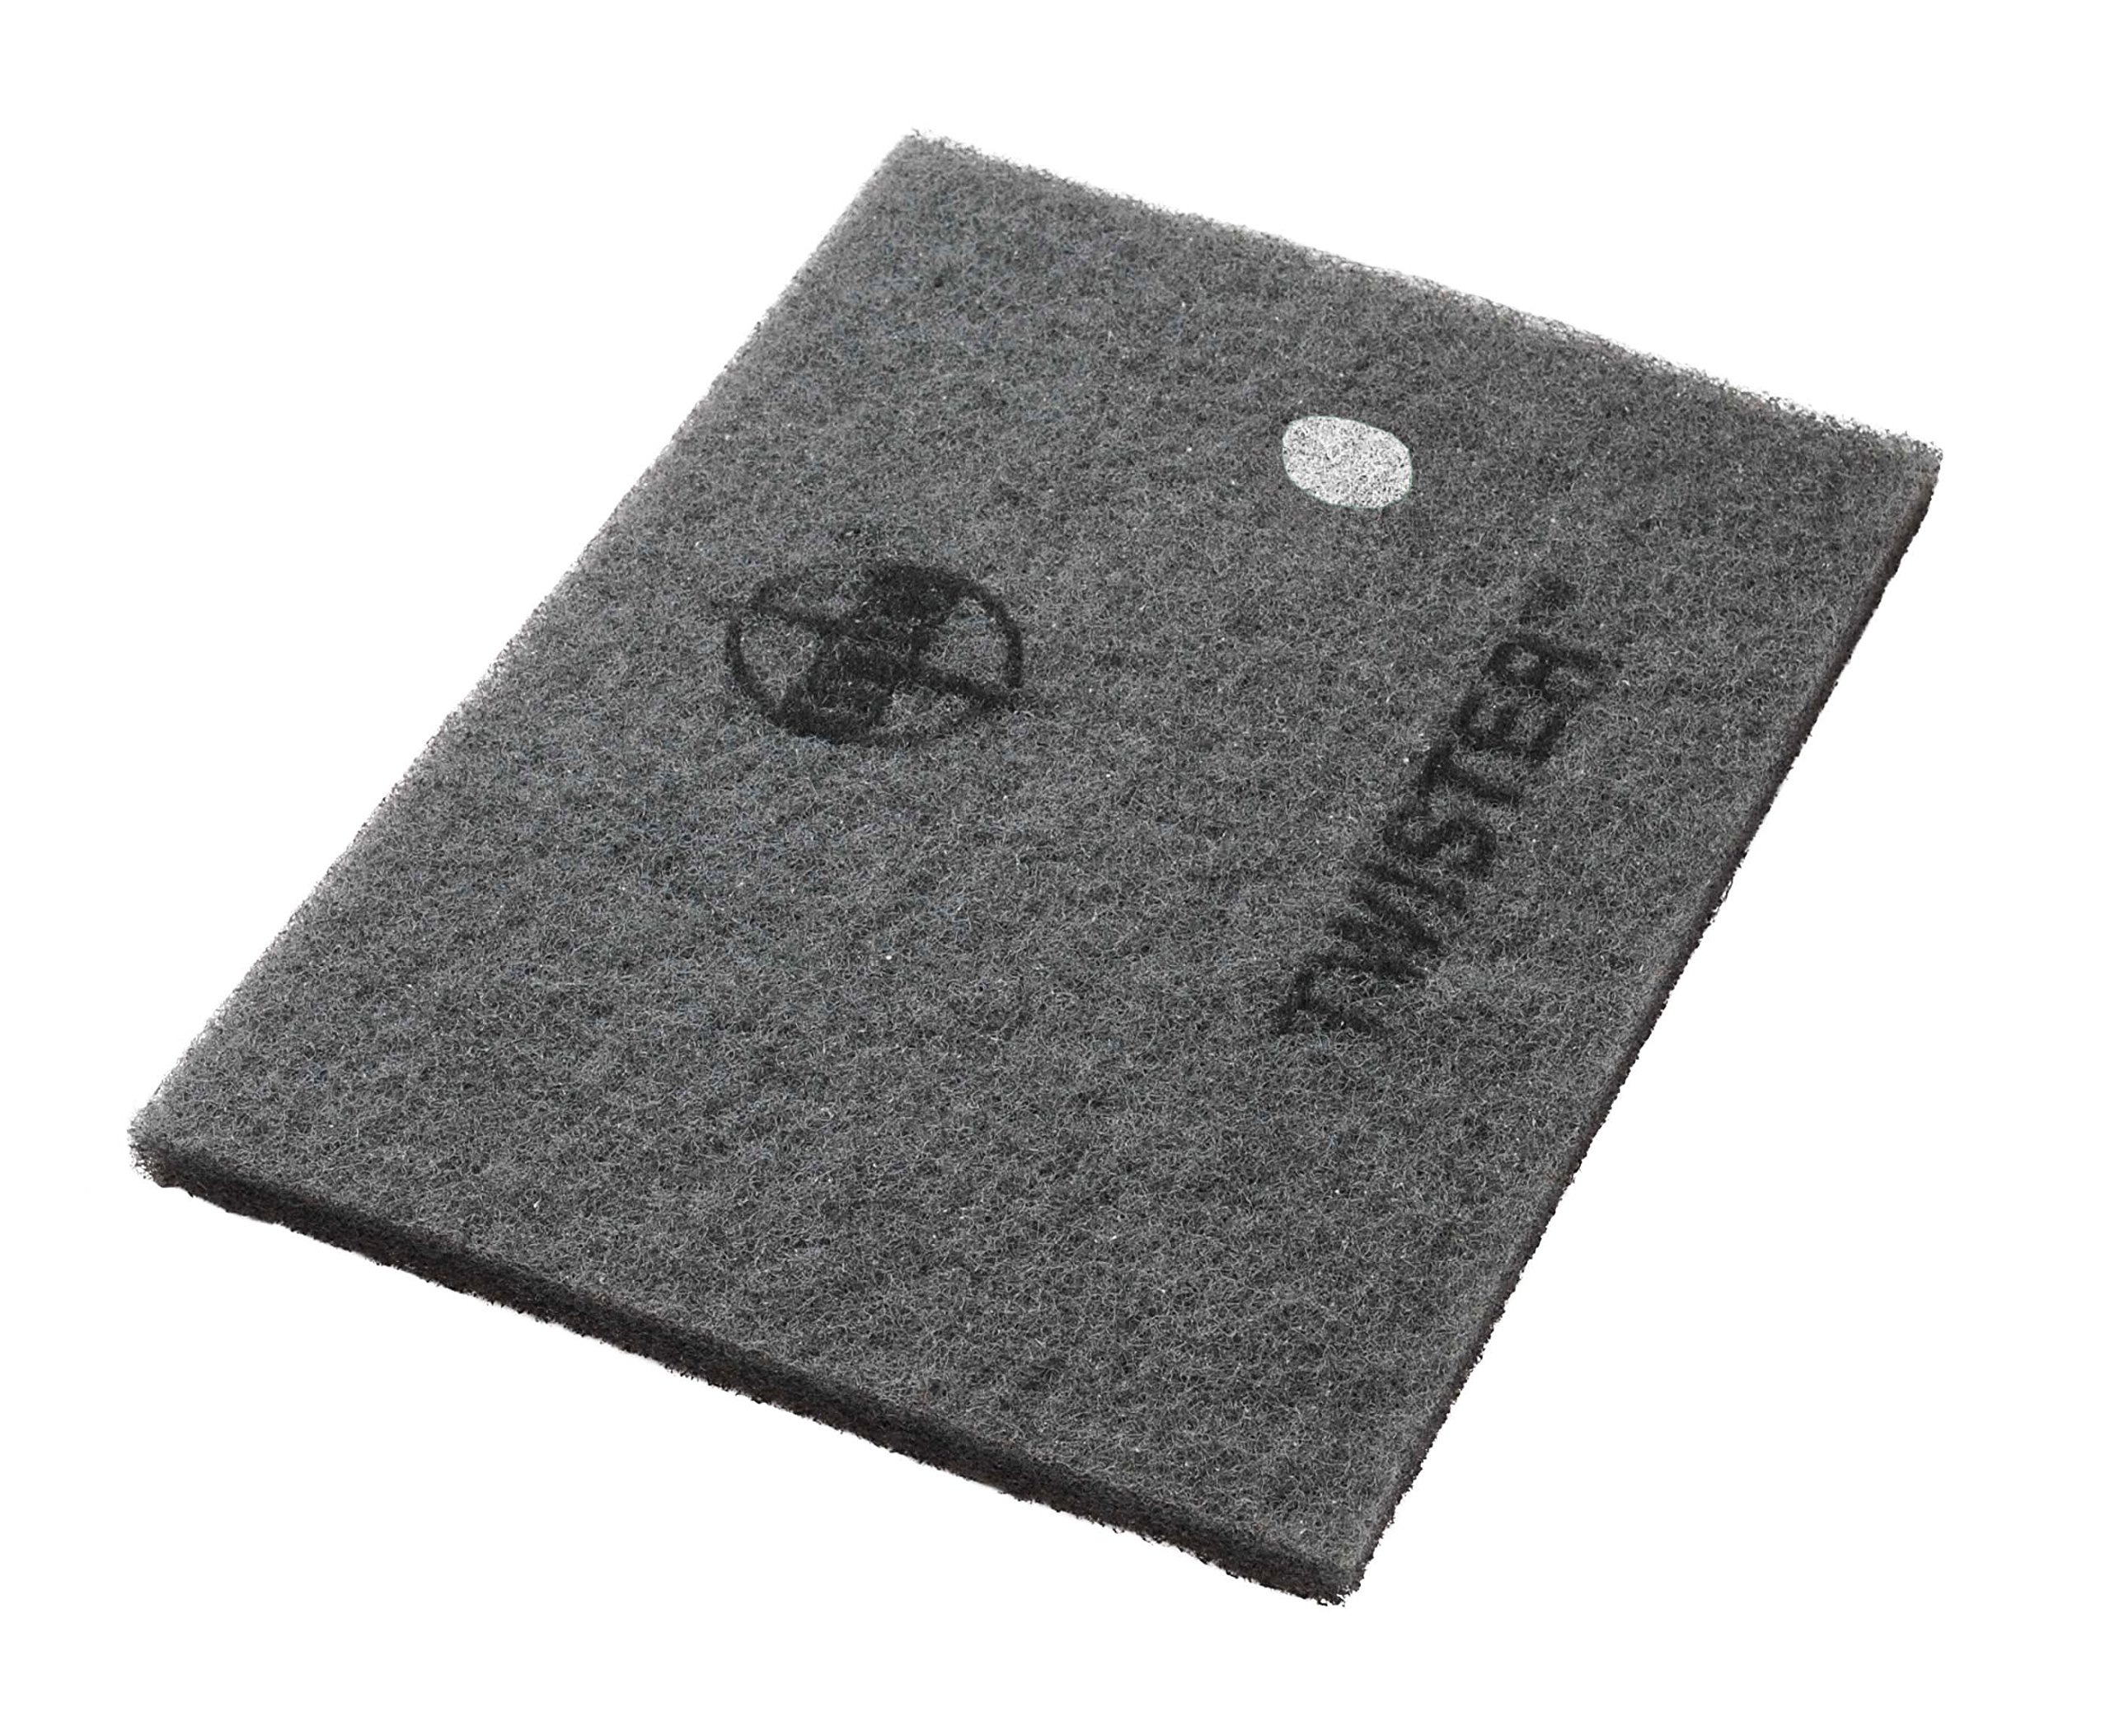 Twister Diamond Cleaning System 14'' x 28'' White Floor Pad - 800 Grit - 2 per case